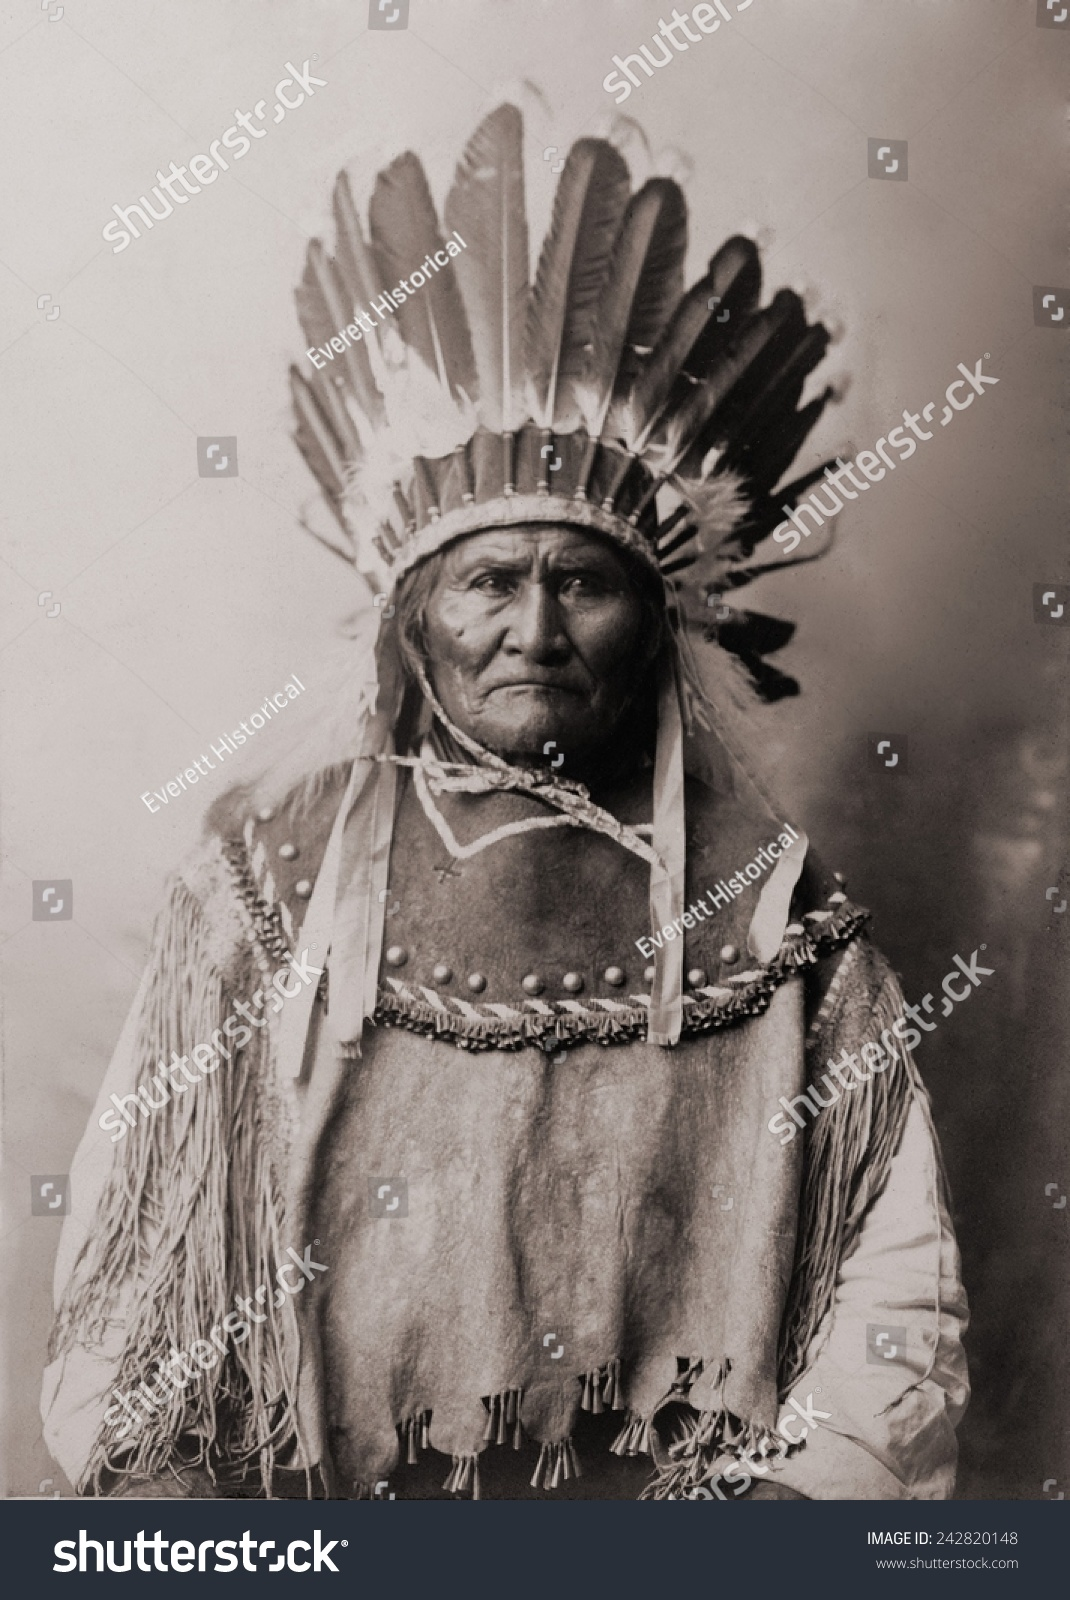 Geronimo 1829-1909 Chiricahua Apache warrior in Indian clothing and feathered headdress 1907